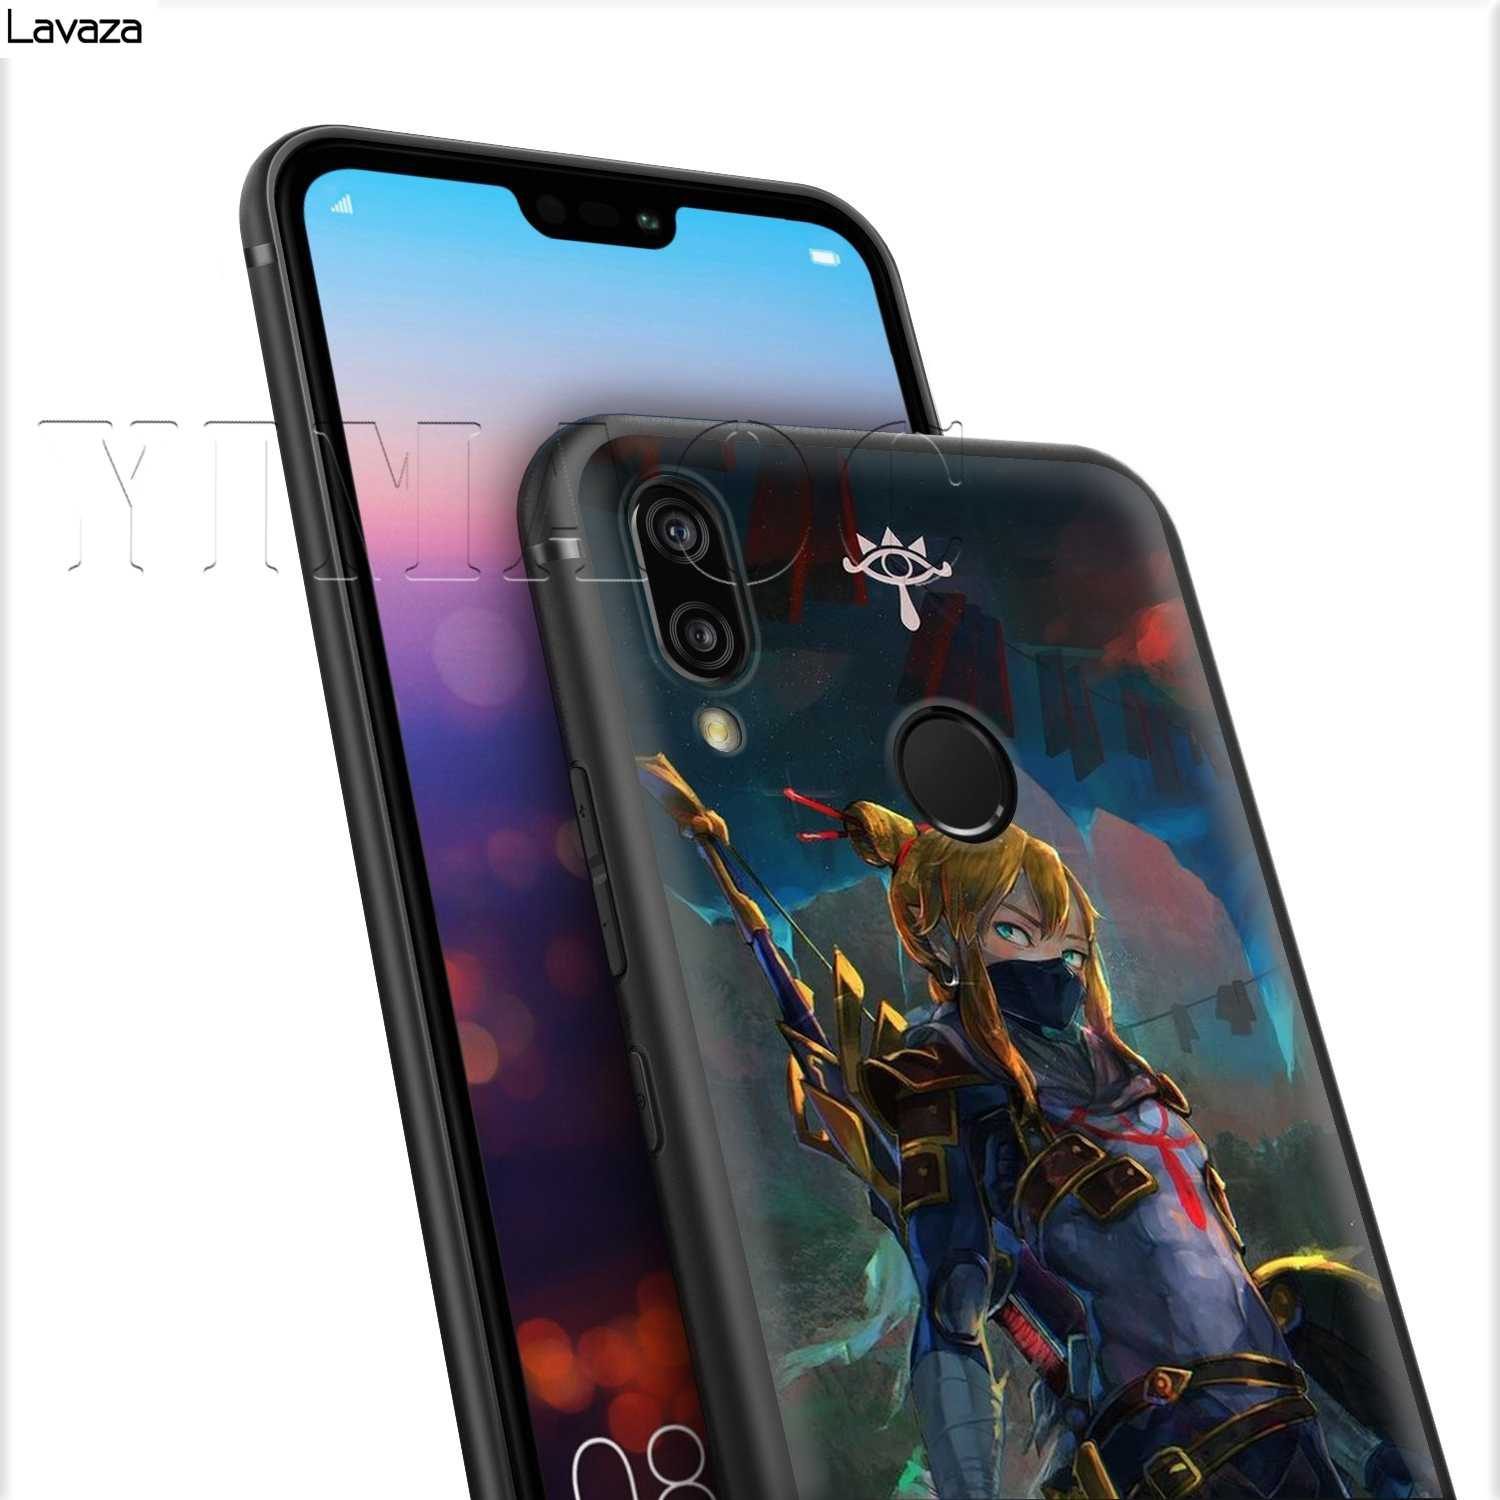 Lavaza The Legend of Zelda Silicone Case for Huawei Mate 10 P8 P9 P10 P20 Y7 Y9 Lite Pro P Smart Mini 2017 2019 2018